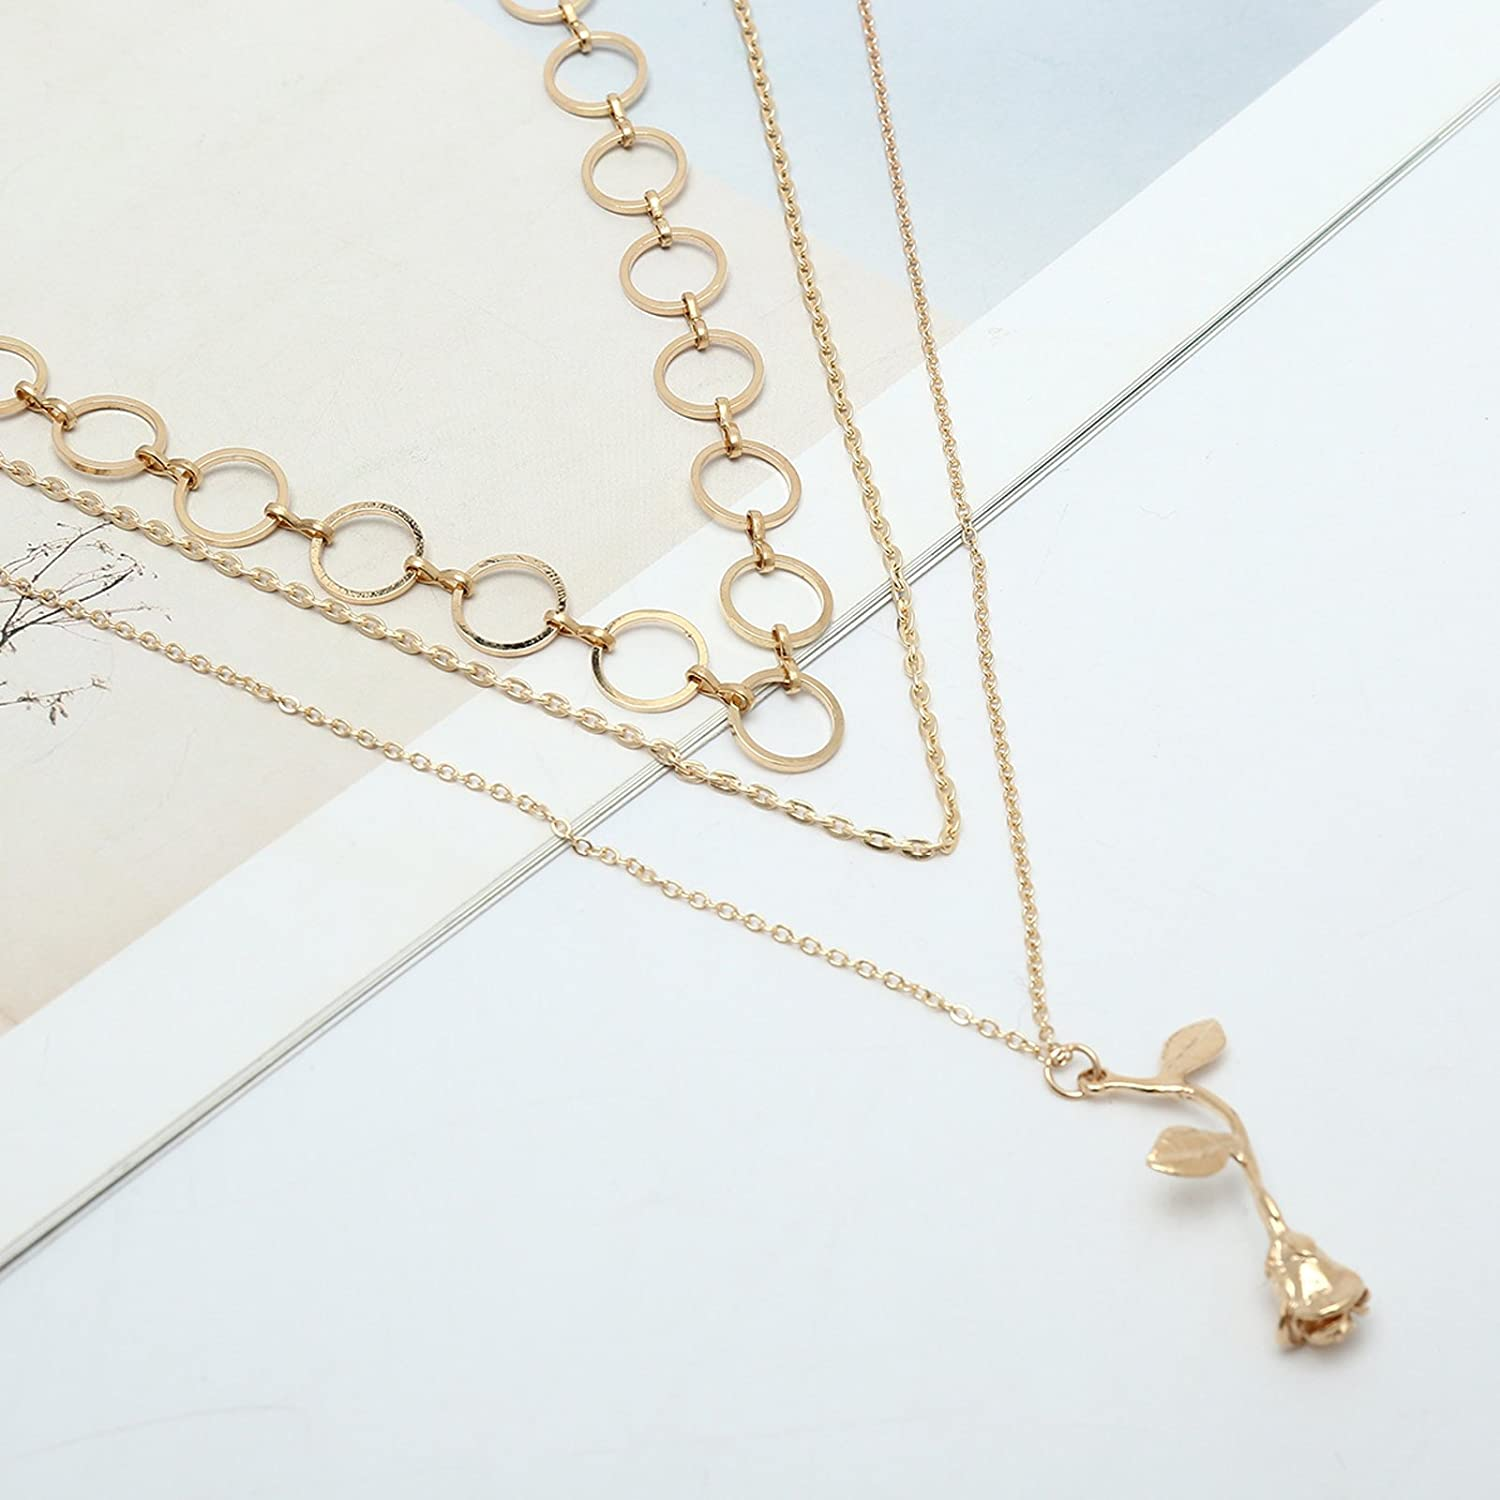 Bishilin Alloy Necklace for WomenClavicle Necklace Choker Multilayer Pendant Chain Rose